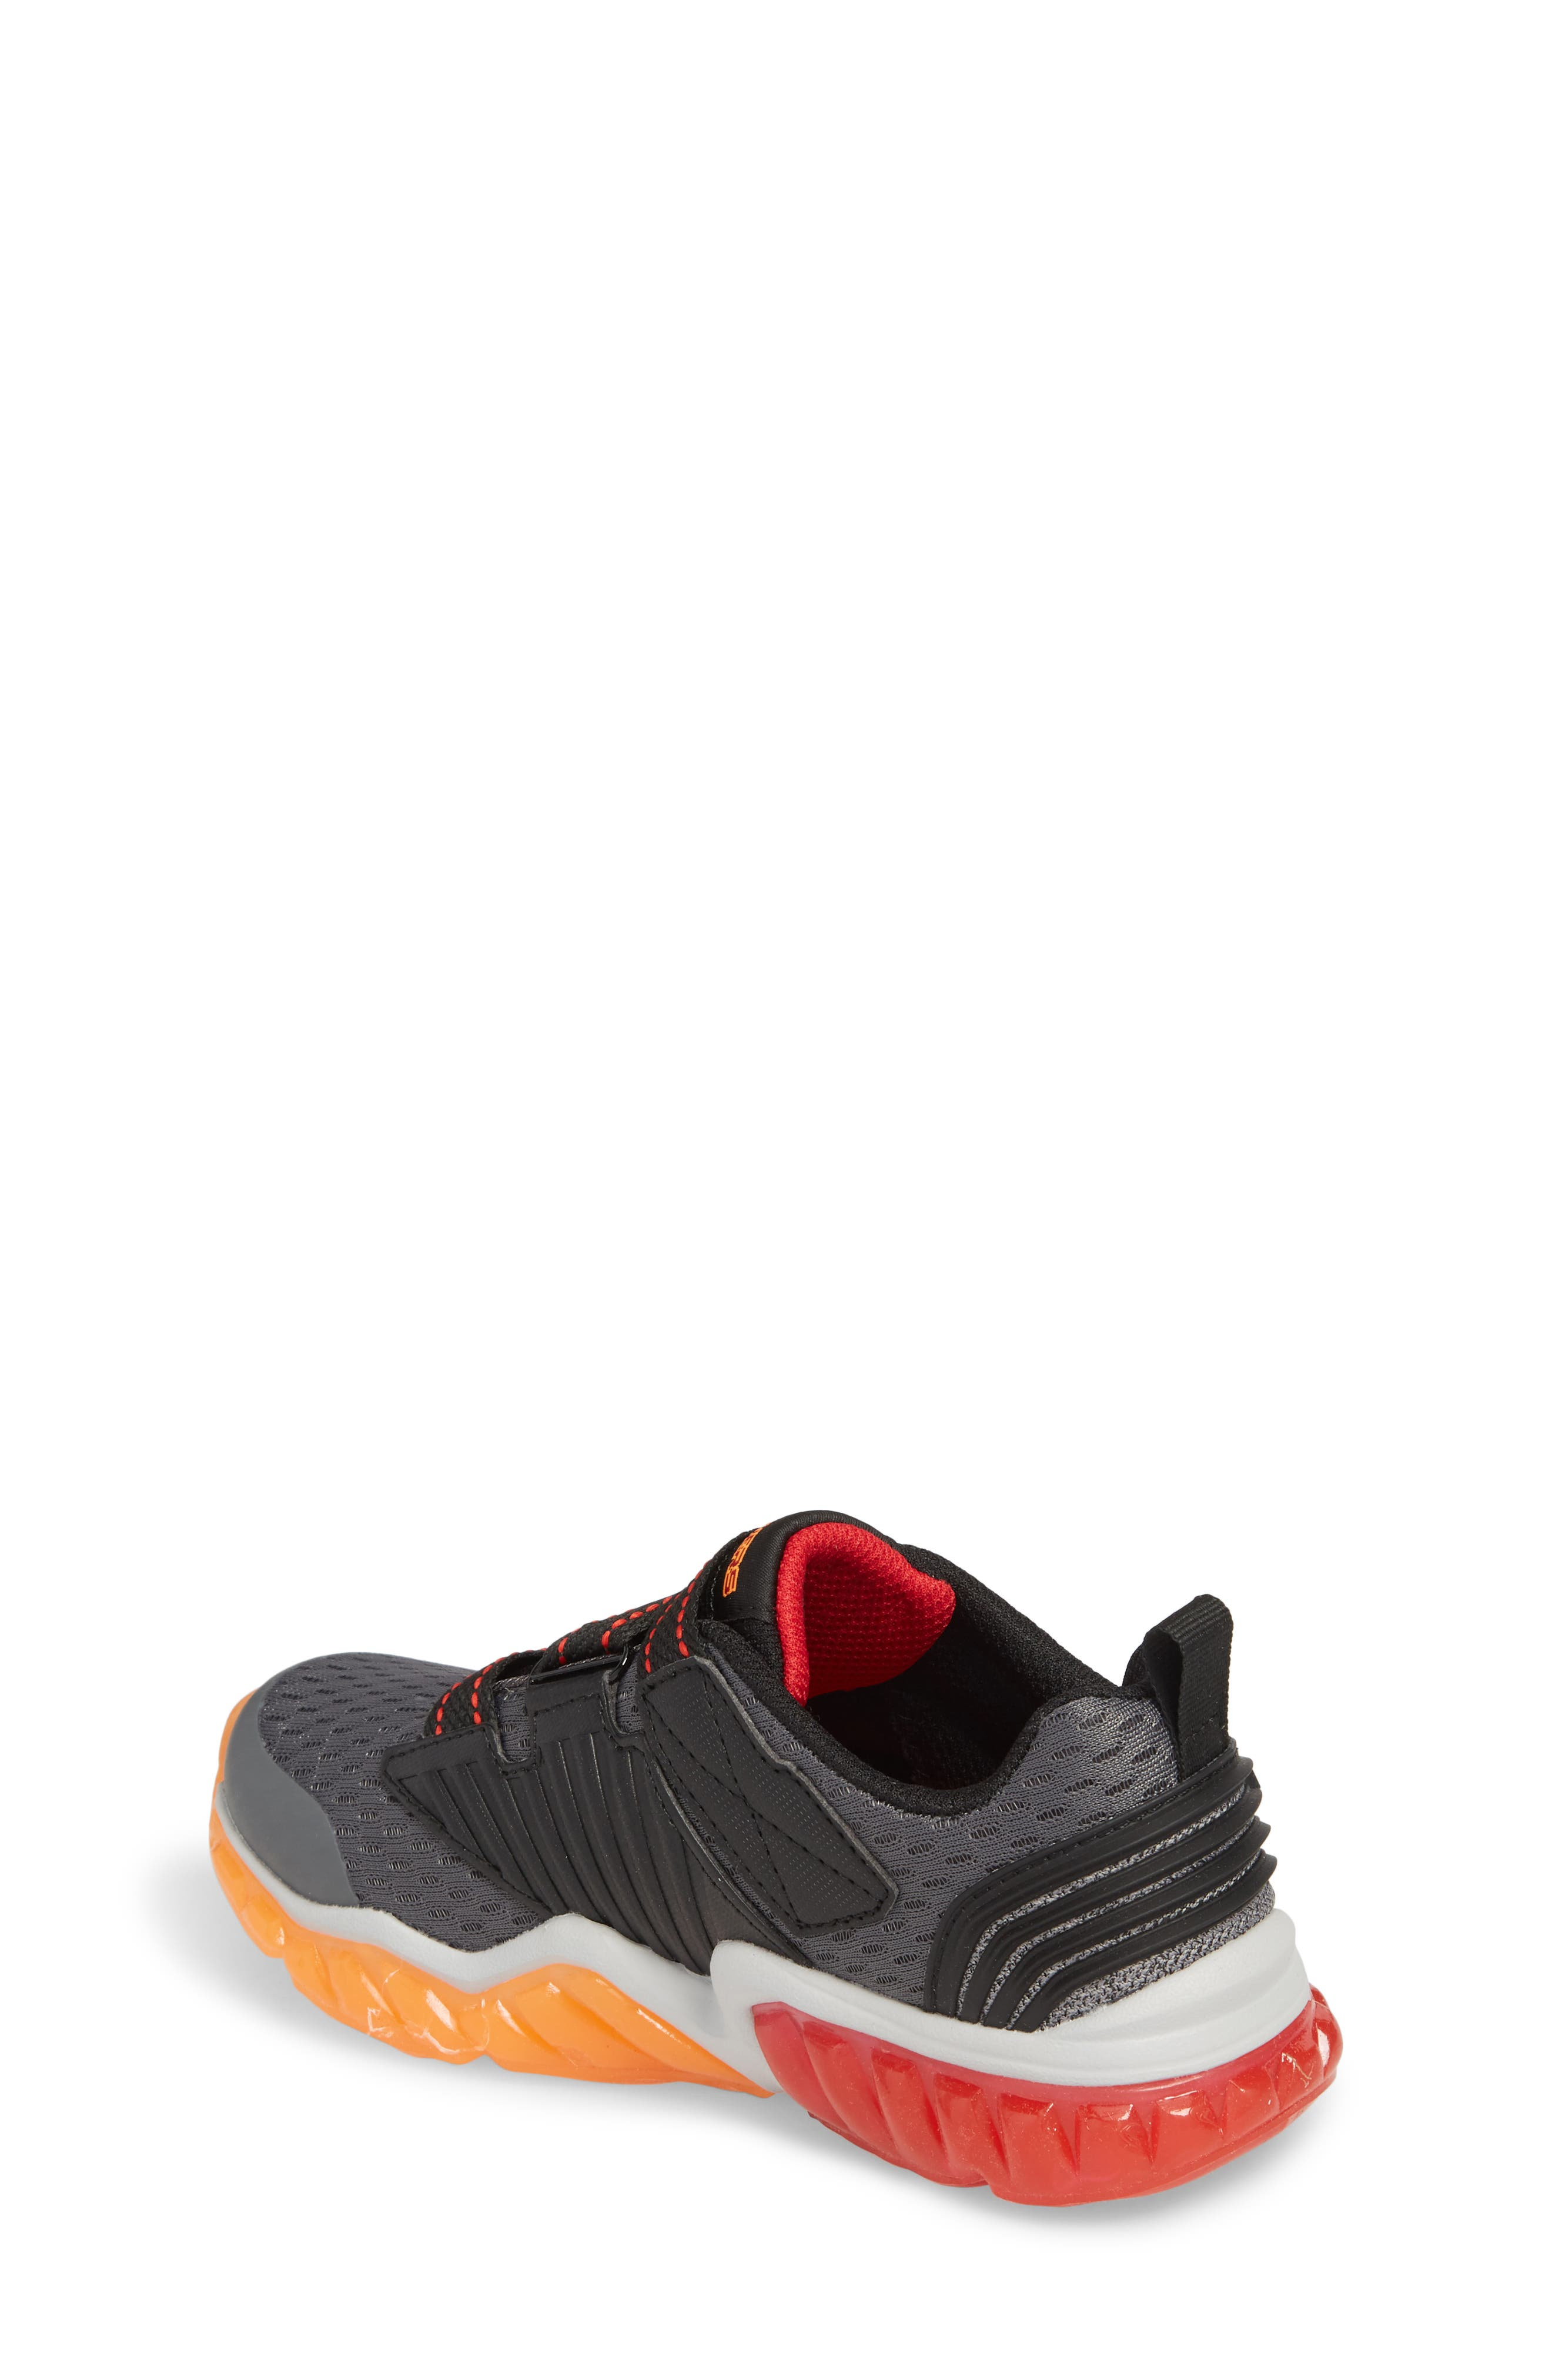 Rapid Flash Light-Up Sneaker,                             Alternate thumbnail 2, color,                             Charcoal/ Red